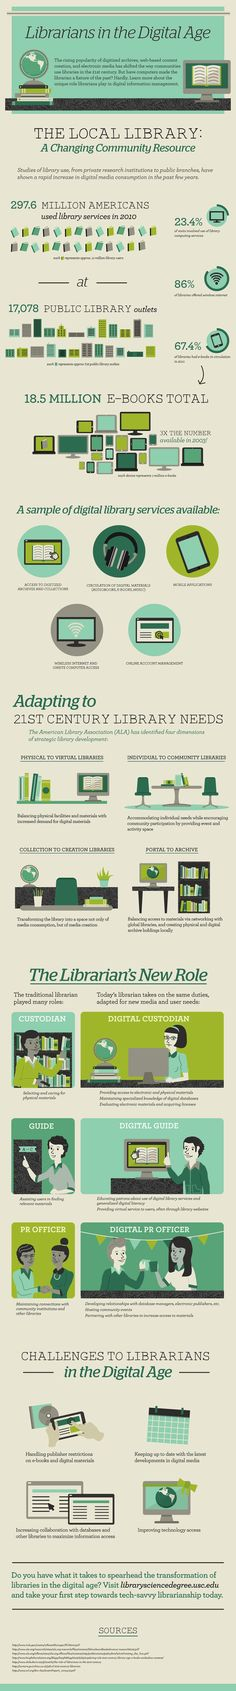 #Librarians in the digital age, a great #infographic by the University of Southern California